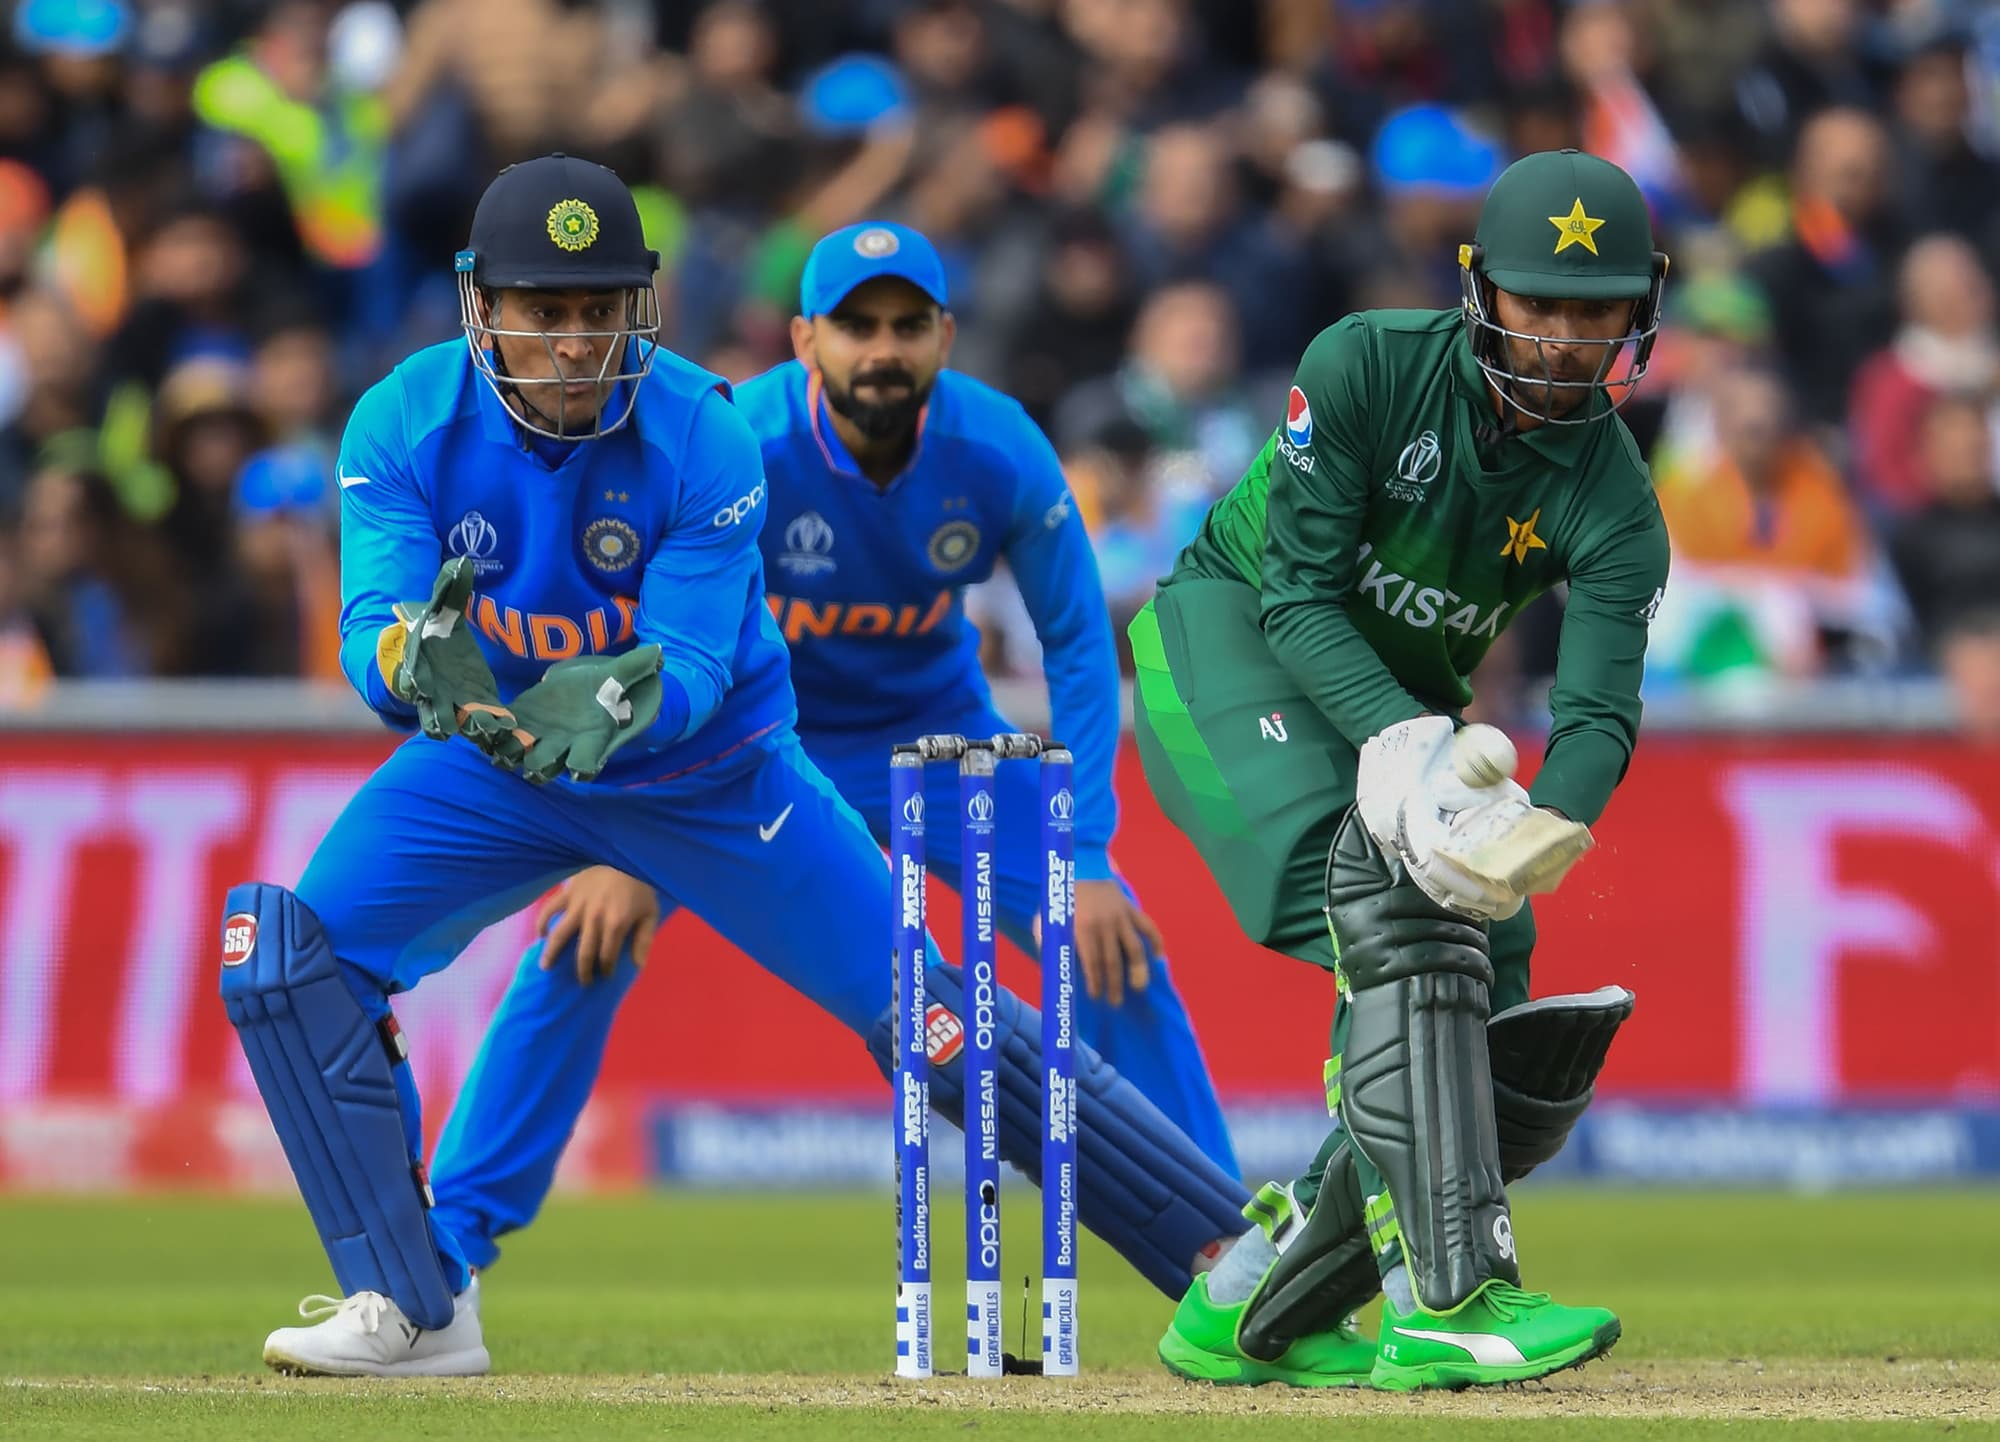 Fakhar Zaman is watched by MS Dhoni (L) Virat Kohli (C) as he plays a shot. ─ AFP